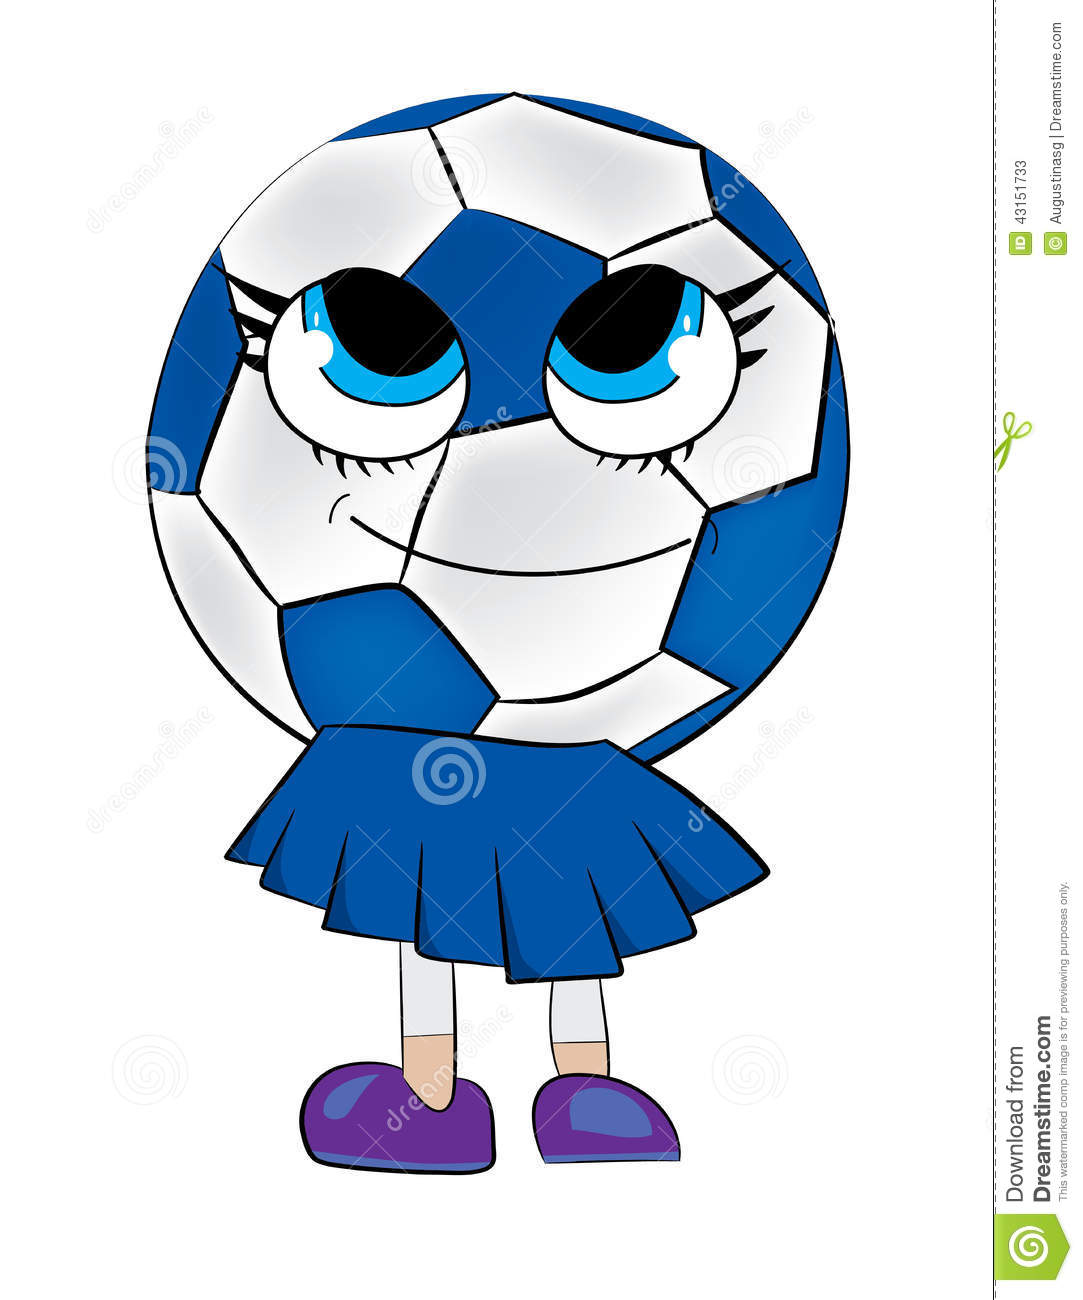 Clipartfest cartoon. Cute soccer ball clipart